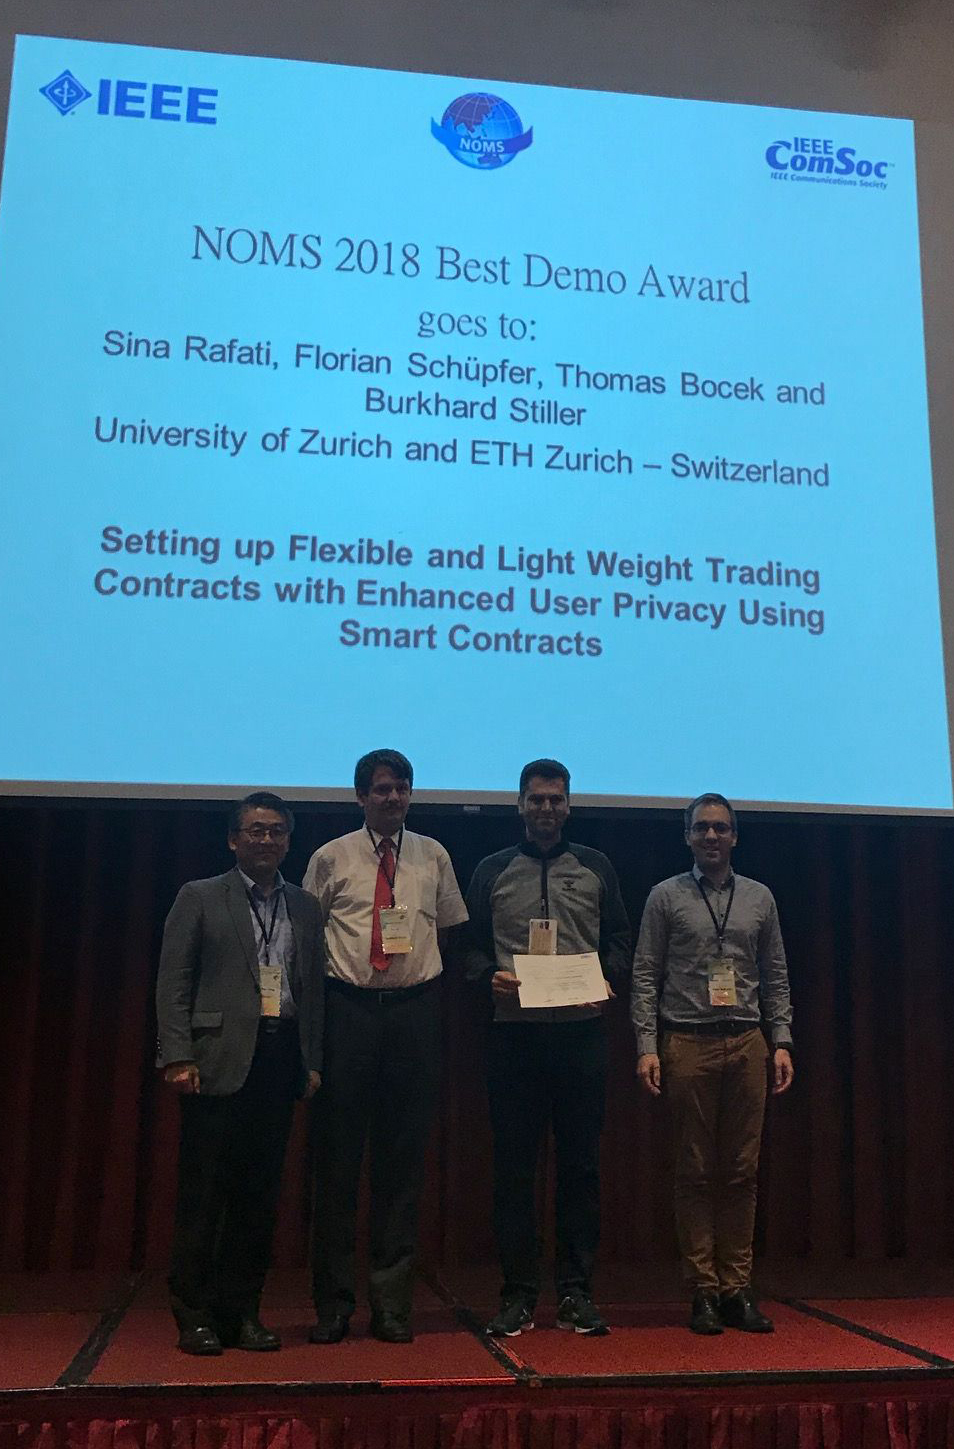 16th IFIP/IEEE NOMS 2018 Best Demo Award Team at NOMS with the Plaque Received: from the left, Prof. Dr. James Hong, Prof. Dr. Burkhard Stiller, Sina Rafati, Prof. Dr. Remi Badonnel (picture thanks to Dr. Marinos Charalambides)